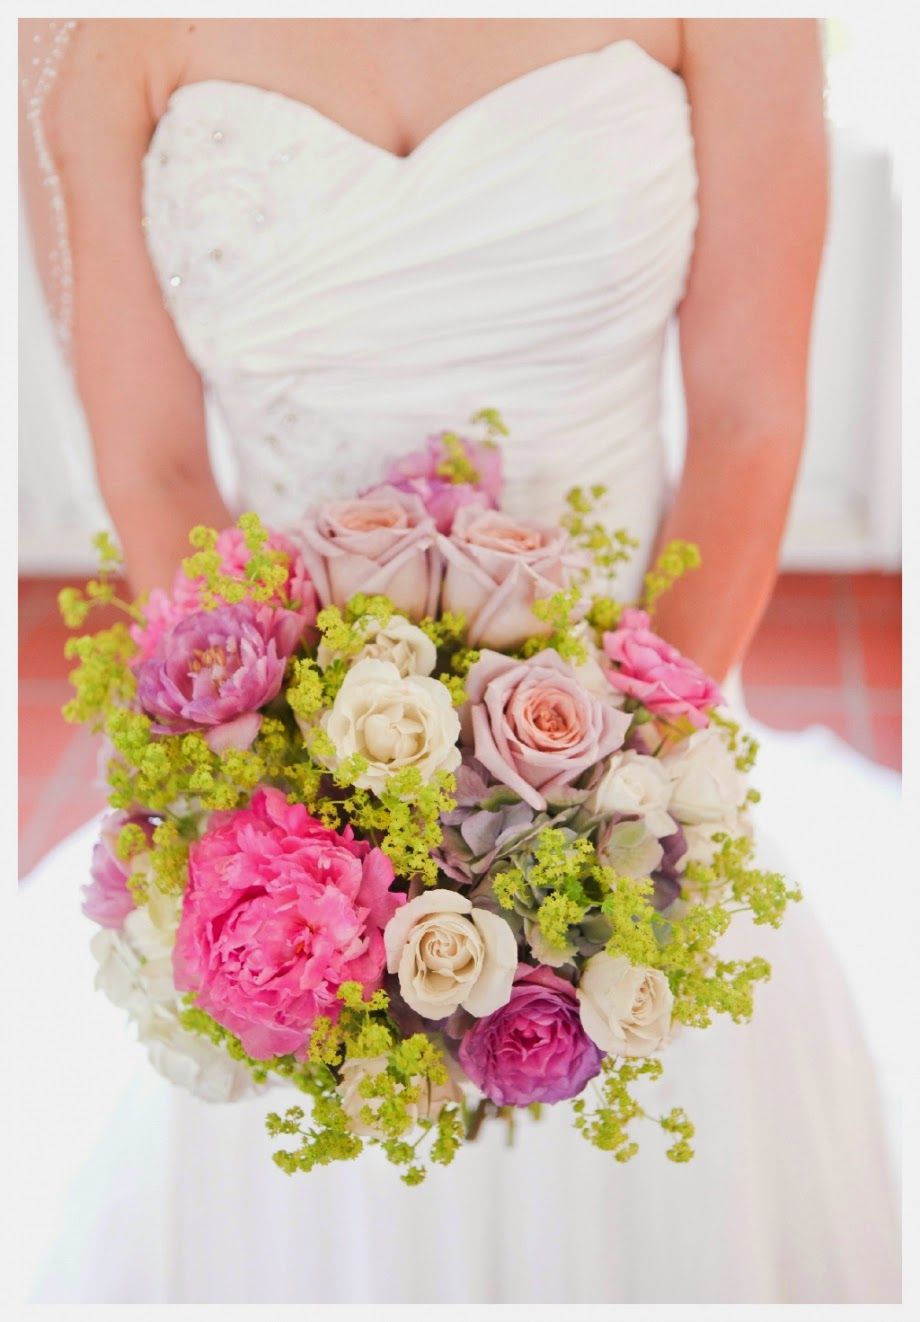 The Blooming Bride, DFW, Fort Worth, Texas, Wedding Flowers, brides